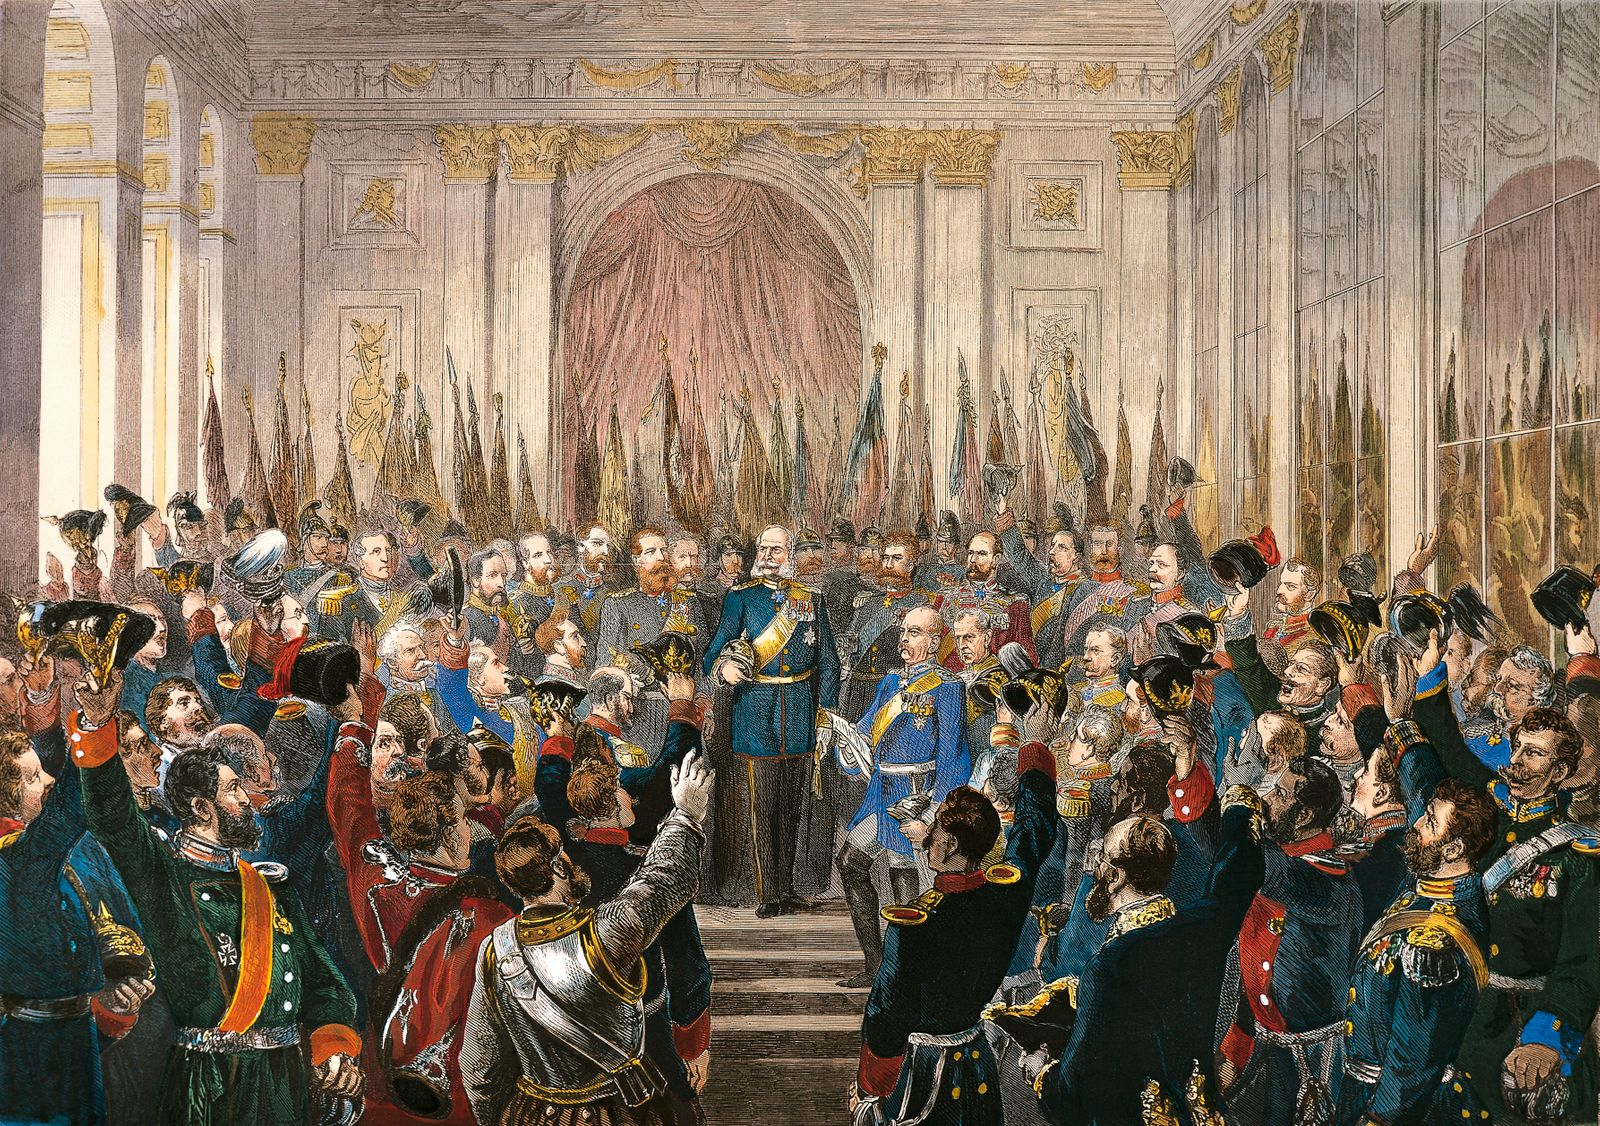 Proclaimation of the German Empire at Versailles